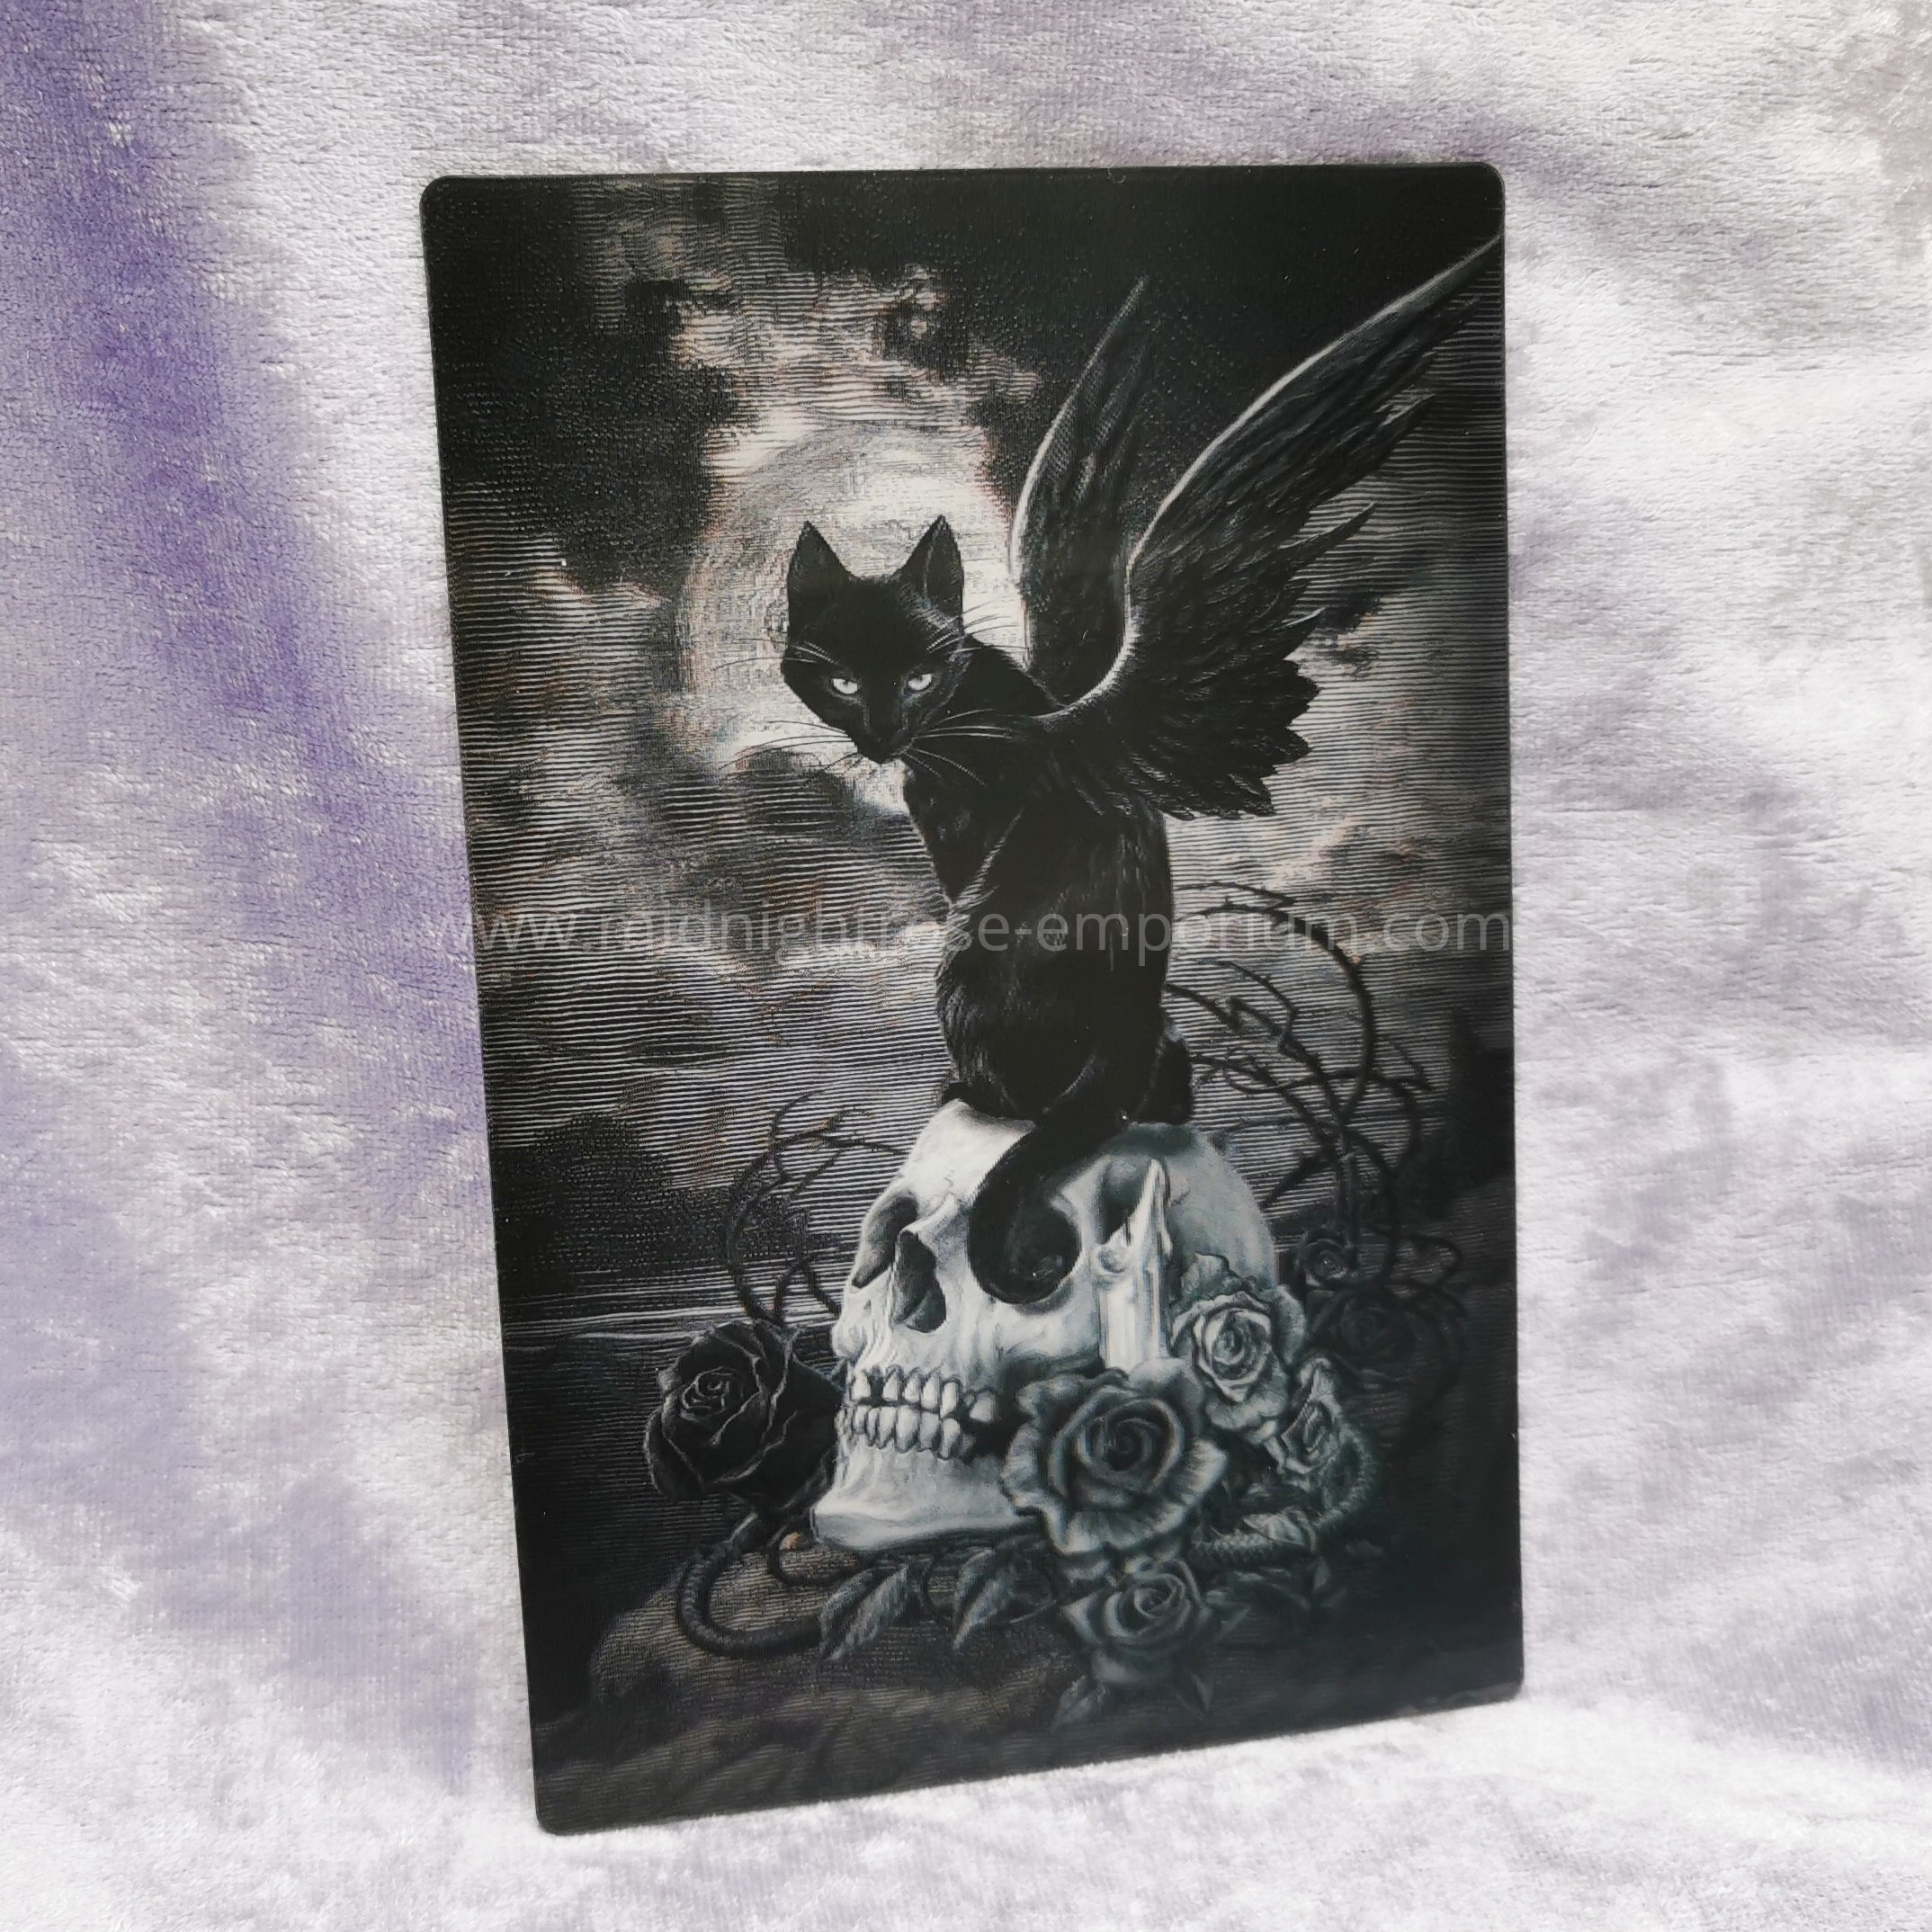 'Nine Lives of Poe' Black Cat & Skull 3D Postcard